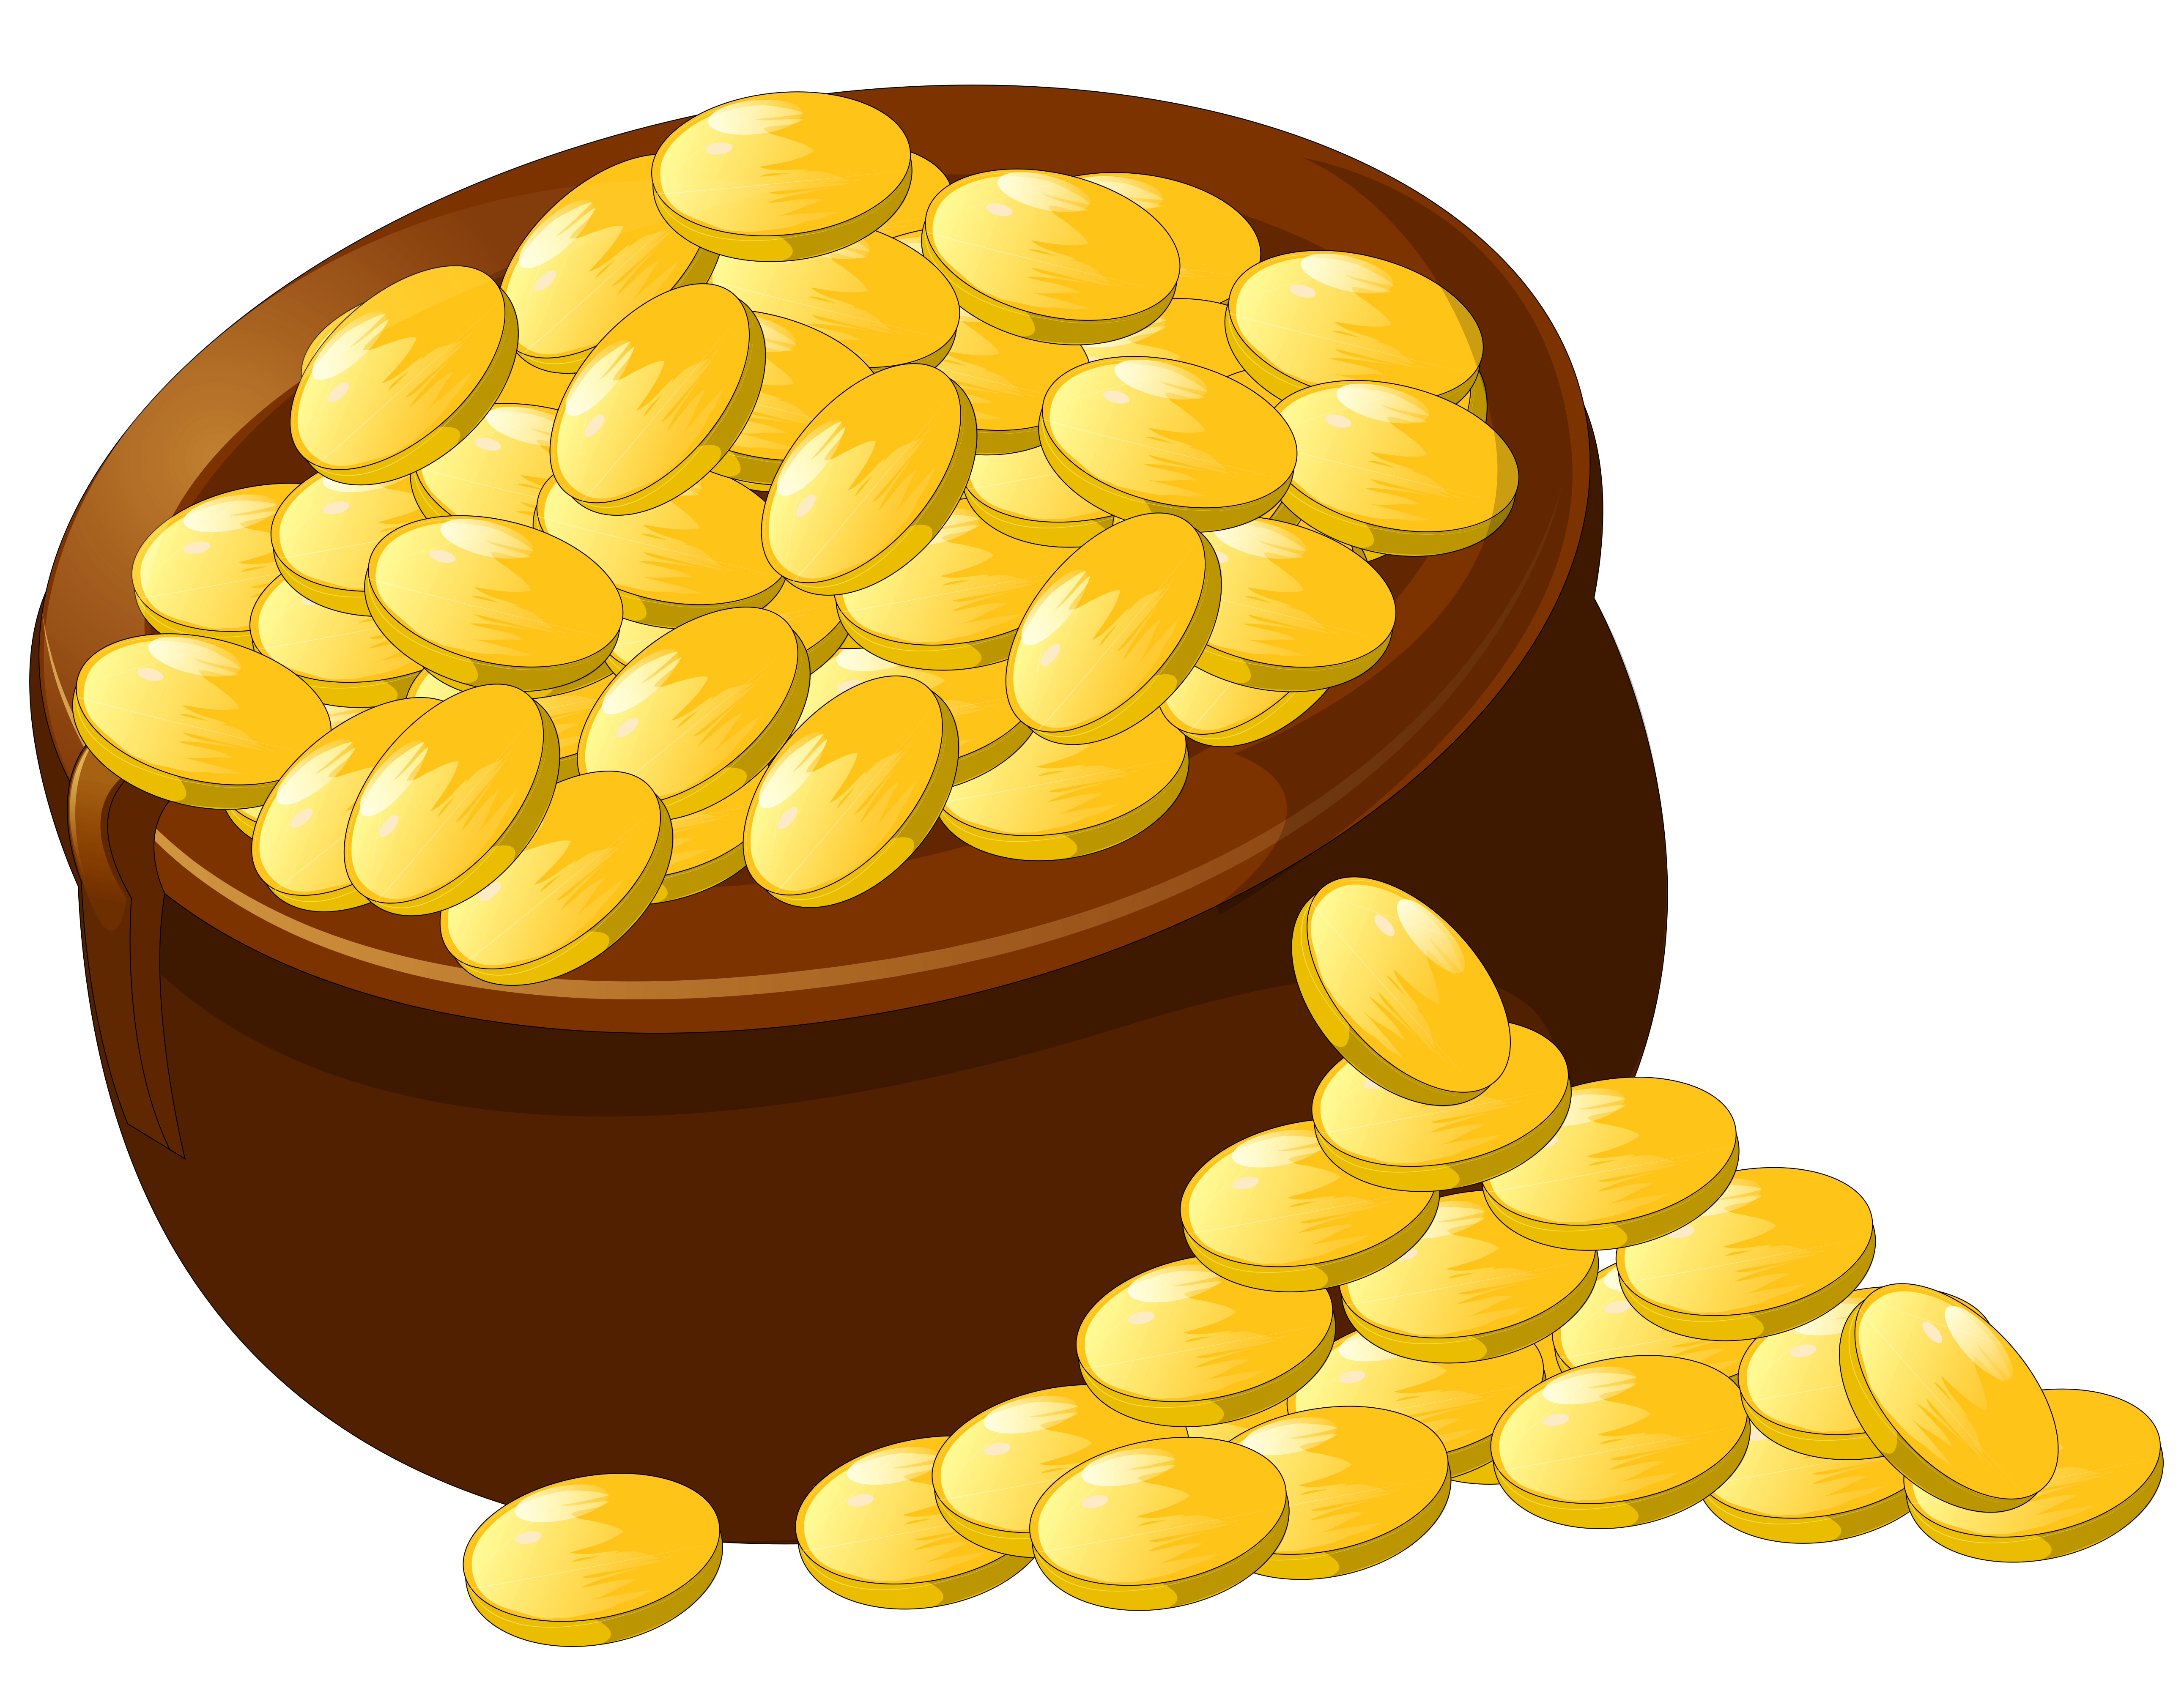 Bar Gold Commodity Food Vegetarian Coin PNG Image